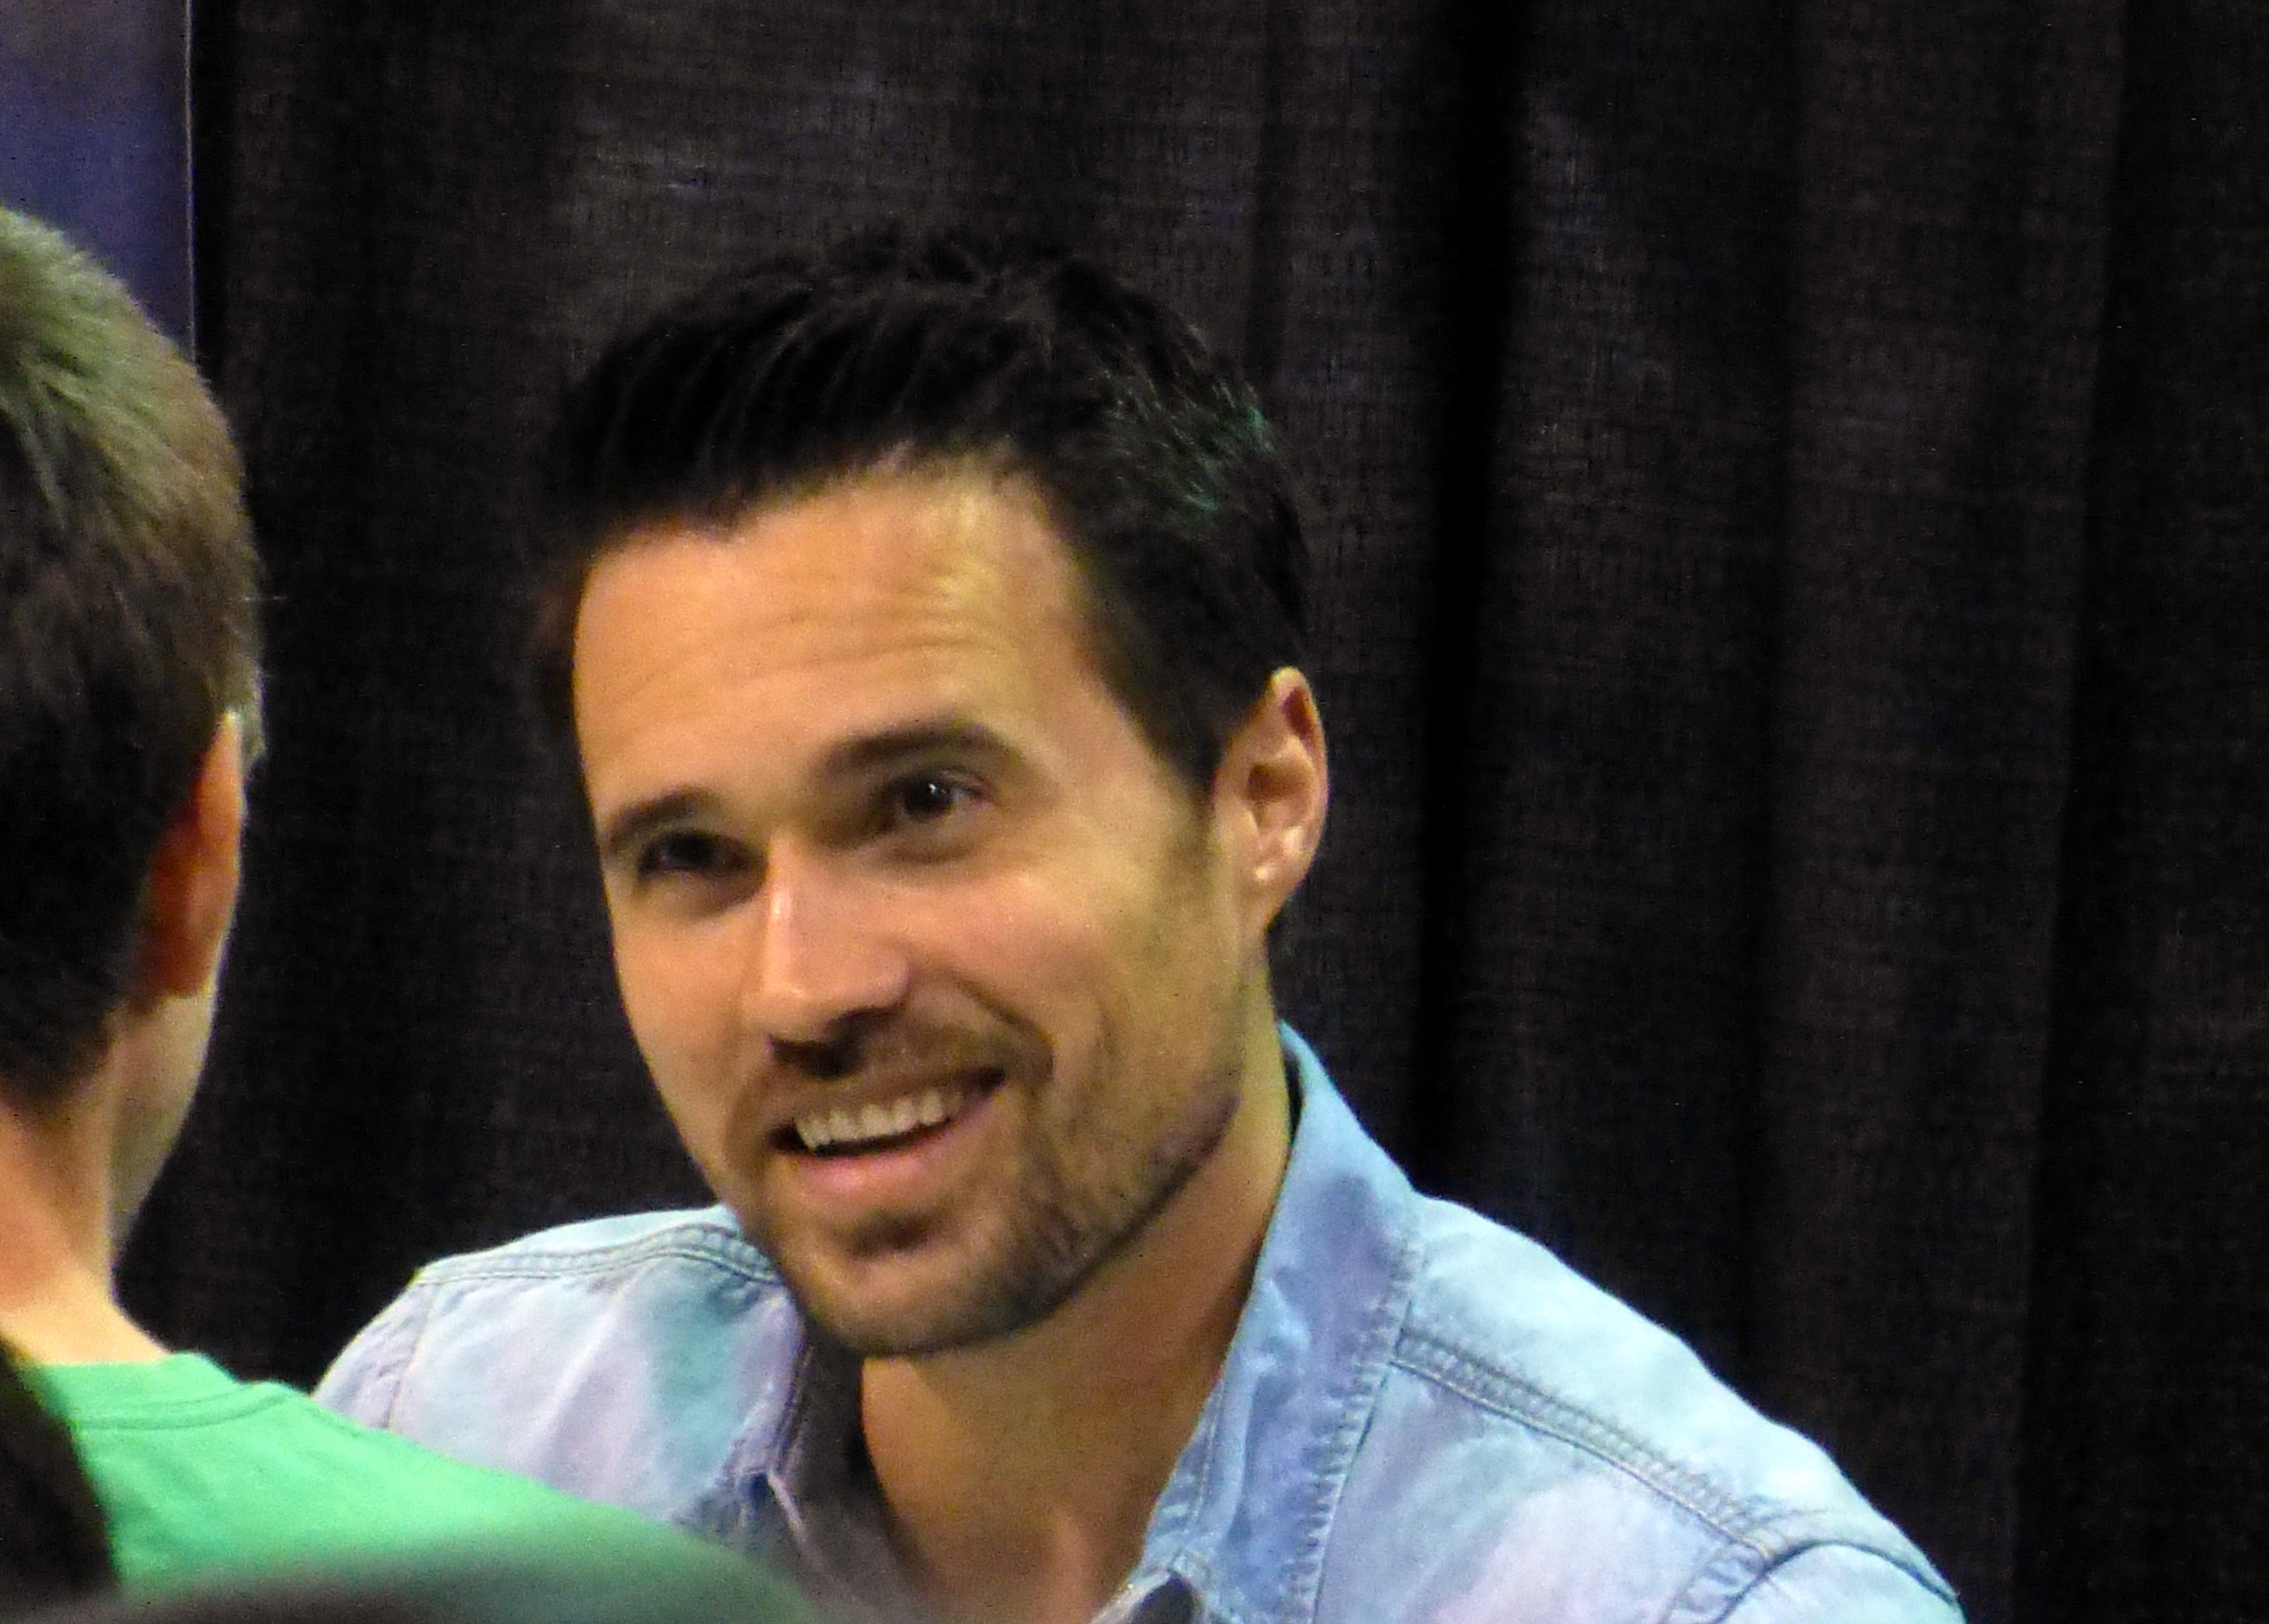 brett dalton source